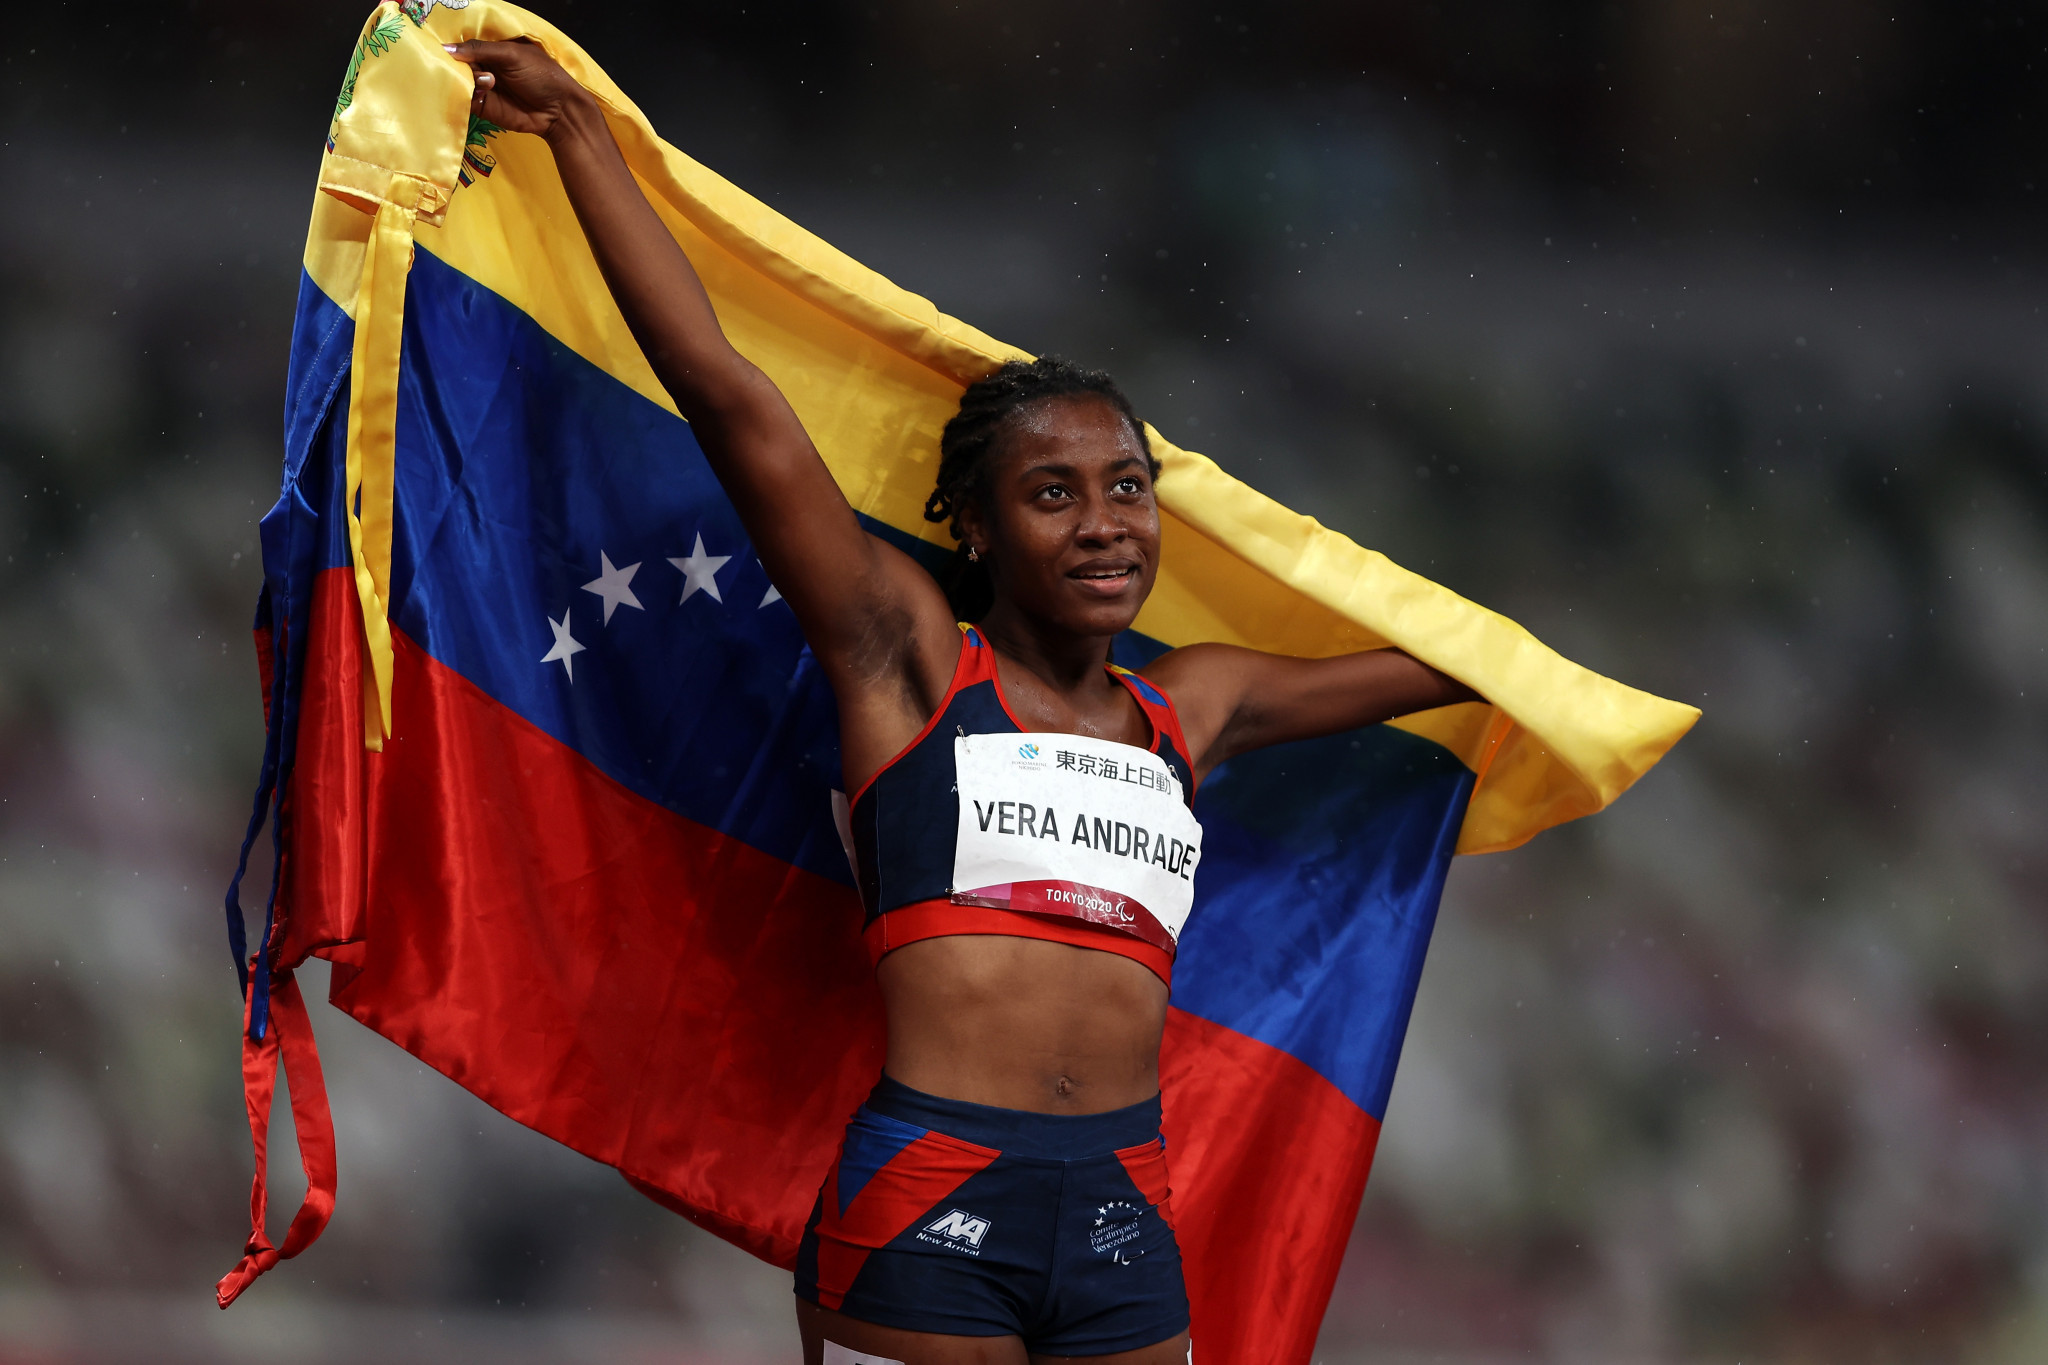 Venezuela win two Paralympic 100 metres gold medals in 15 minutes as Malaysian disqualification sparks fury at Tokyo 2020